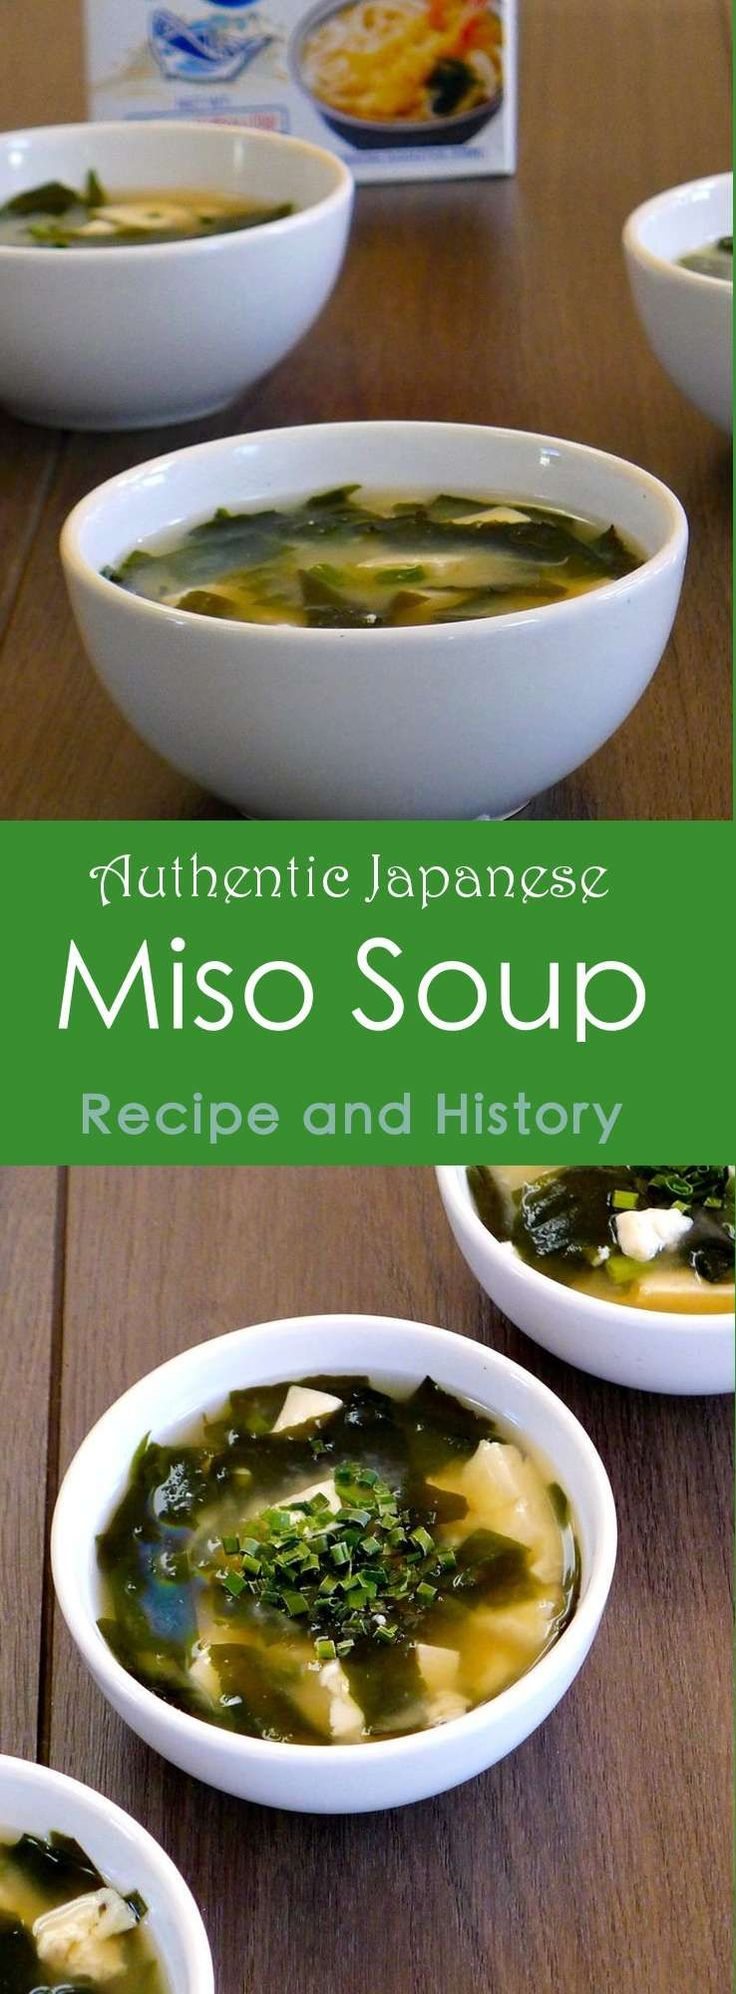 Miso Soup is made with miso, a traditional food in Japan and China that can be found in the form of a very strong-flavored salty umami paste. #vegetarian #vegan #soup #196flavors